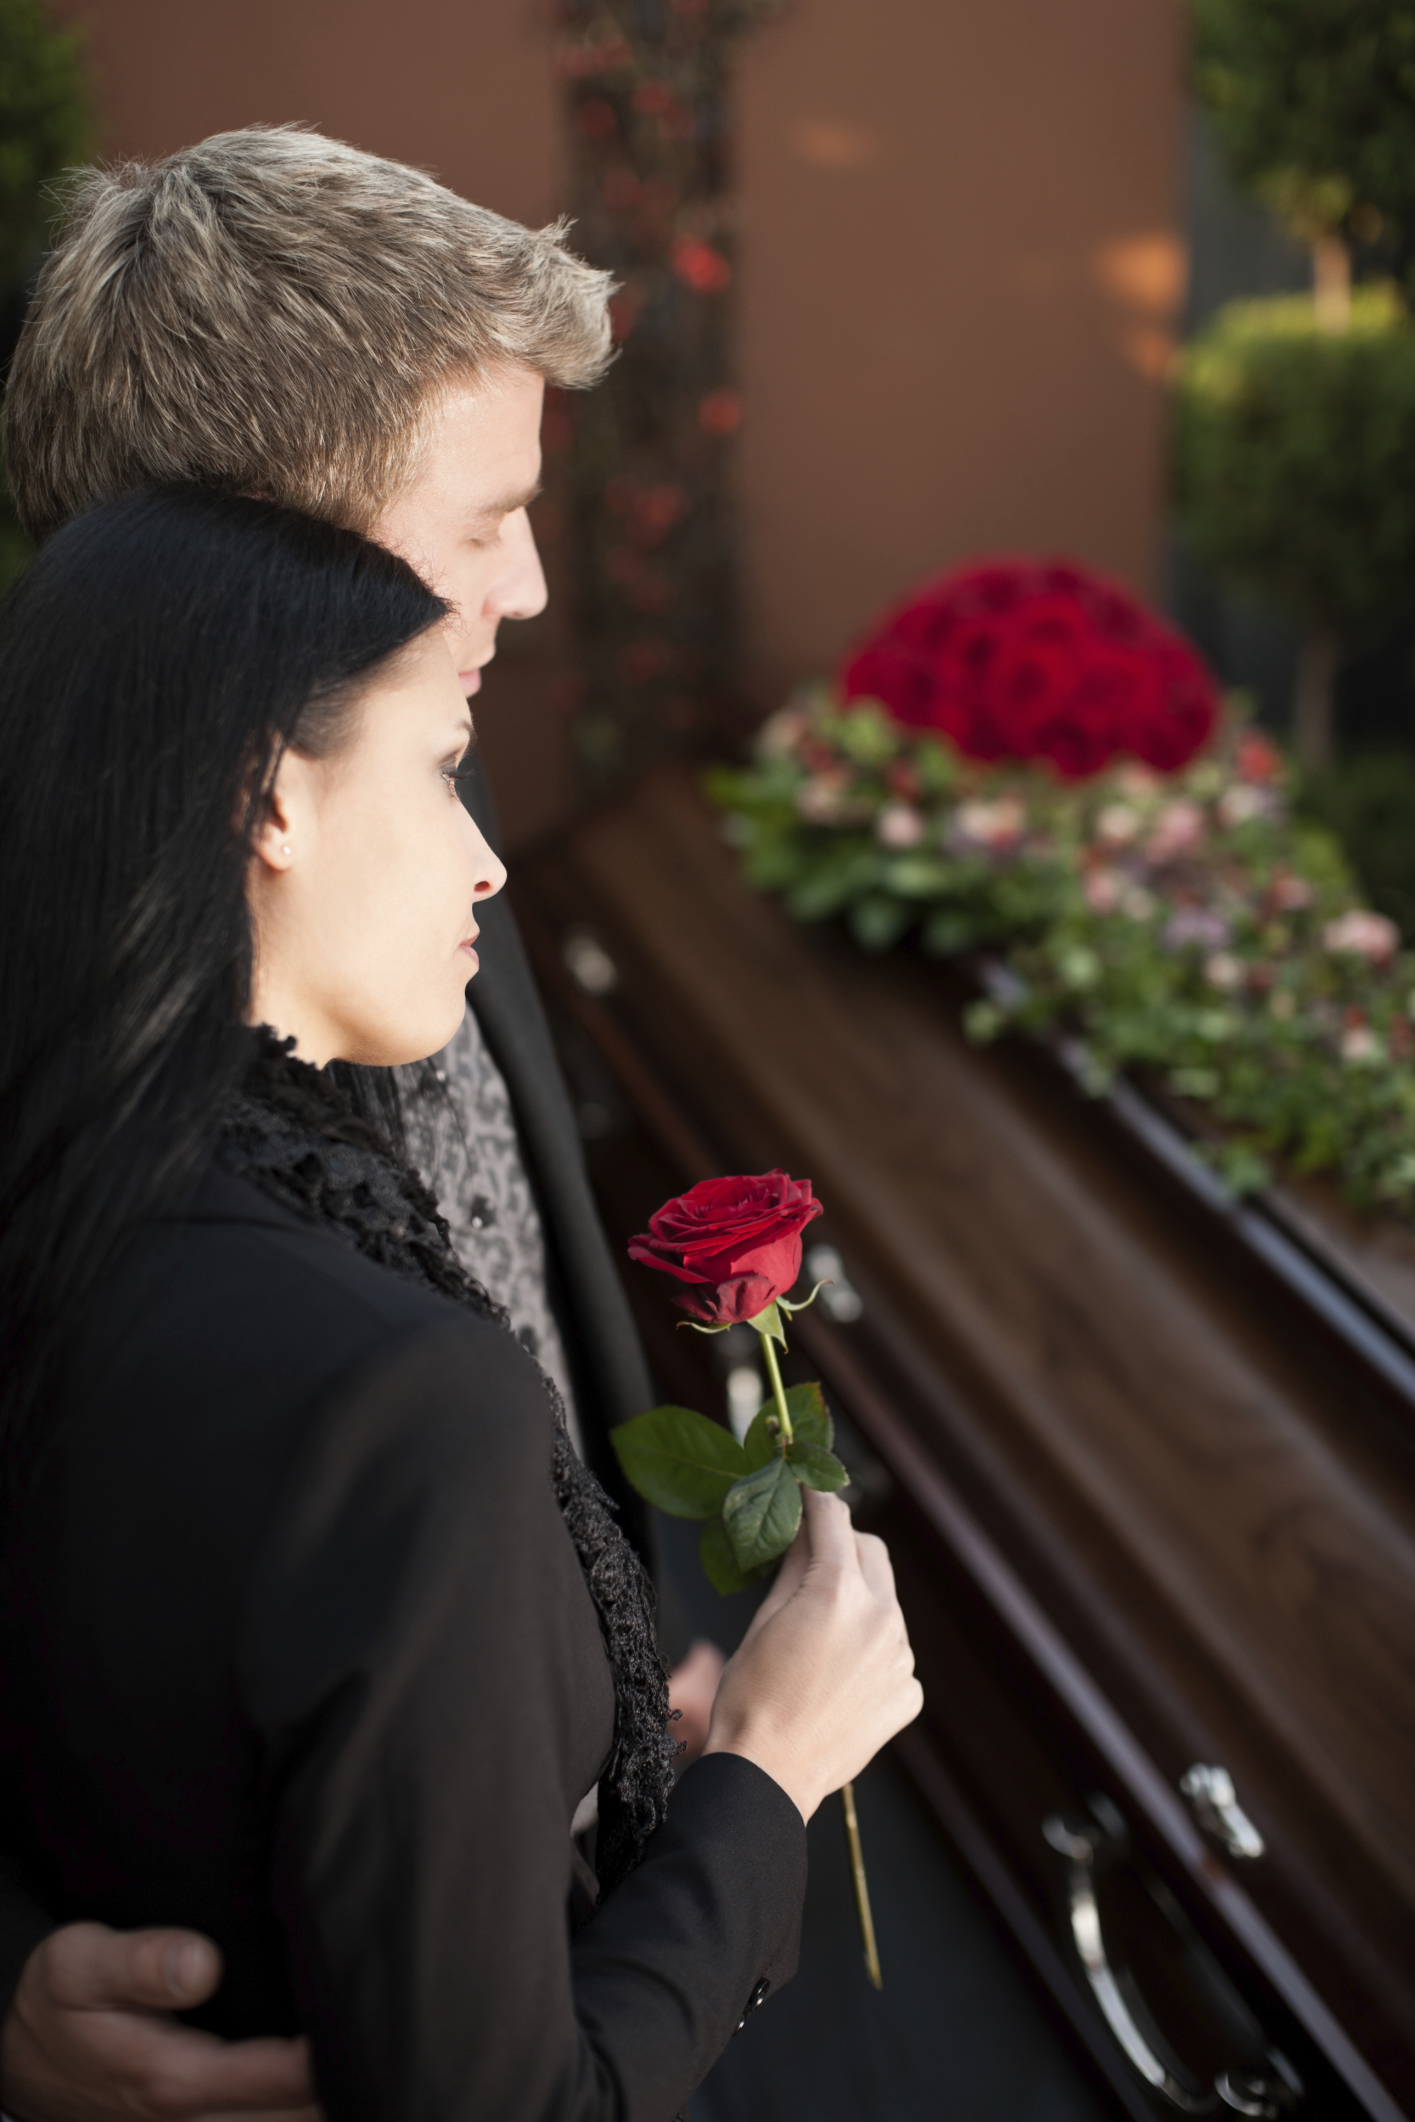 Proper funeral etiquette get ordained for How do i get ordained to perform wedding ceremonies